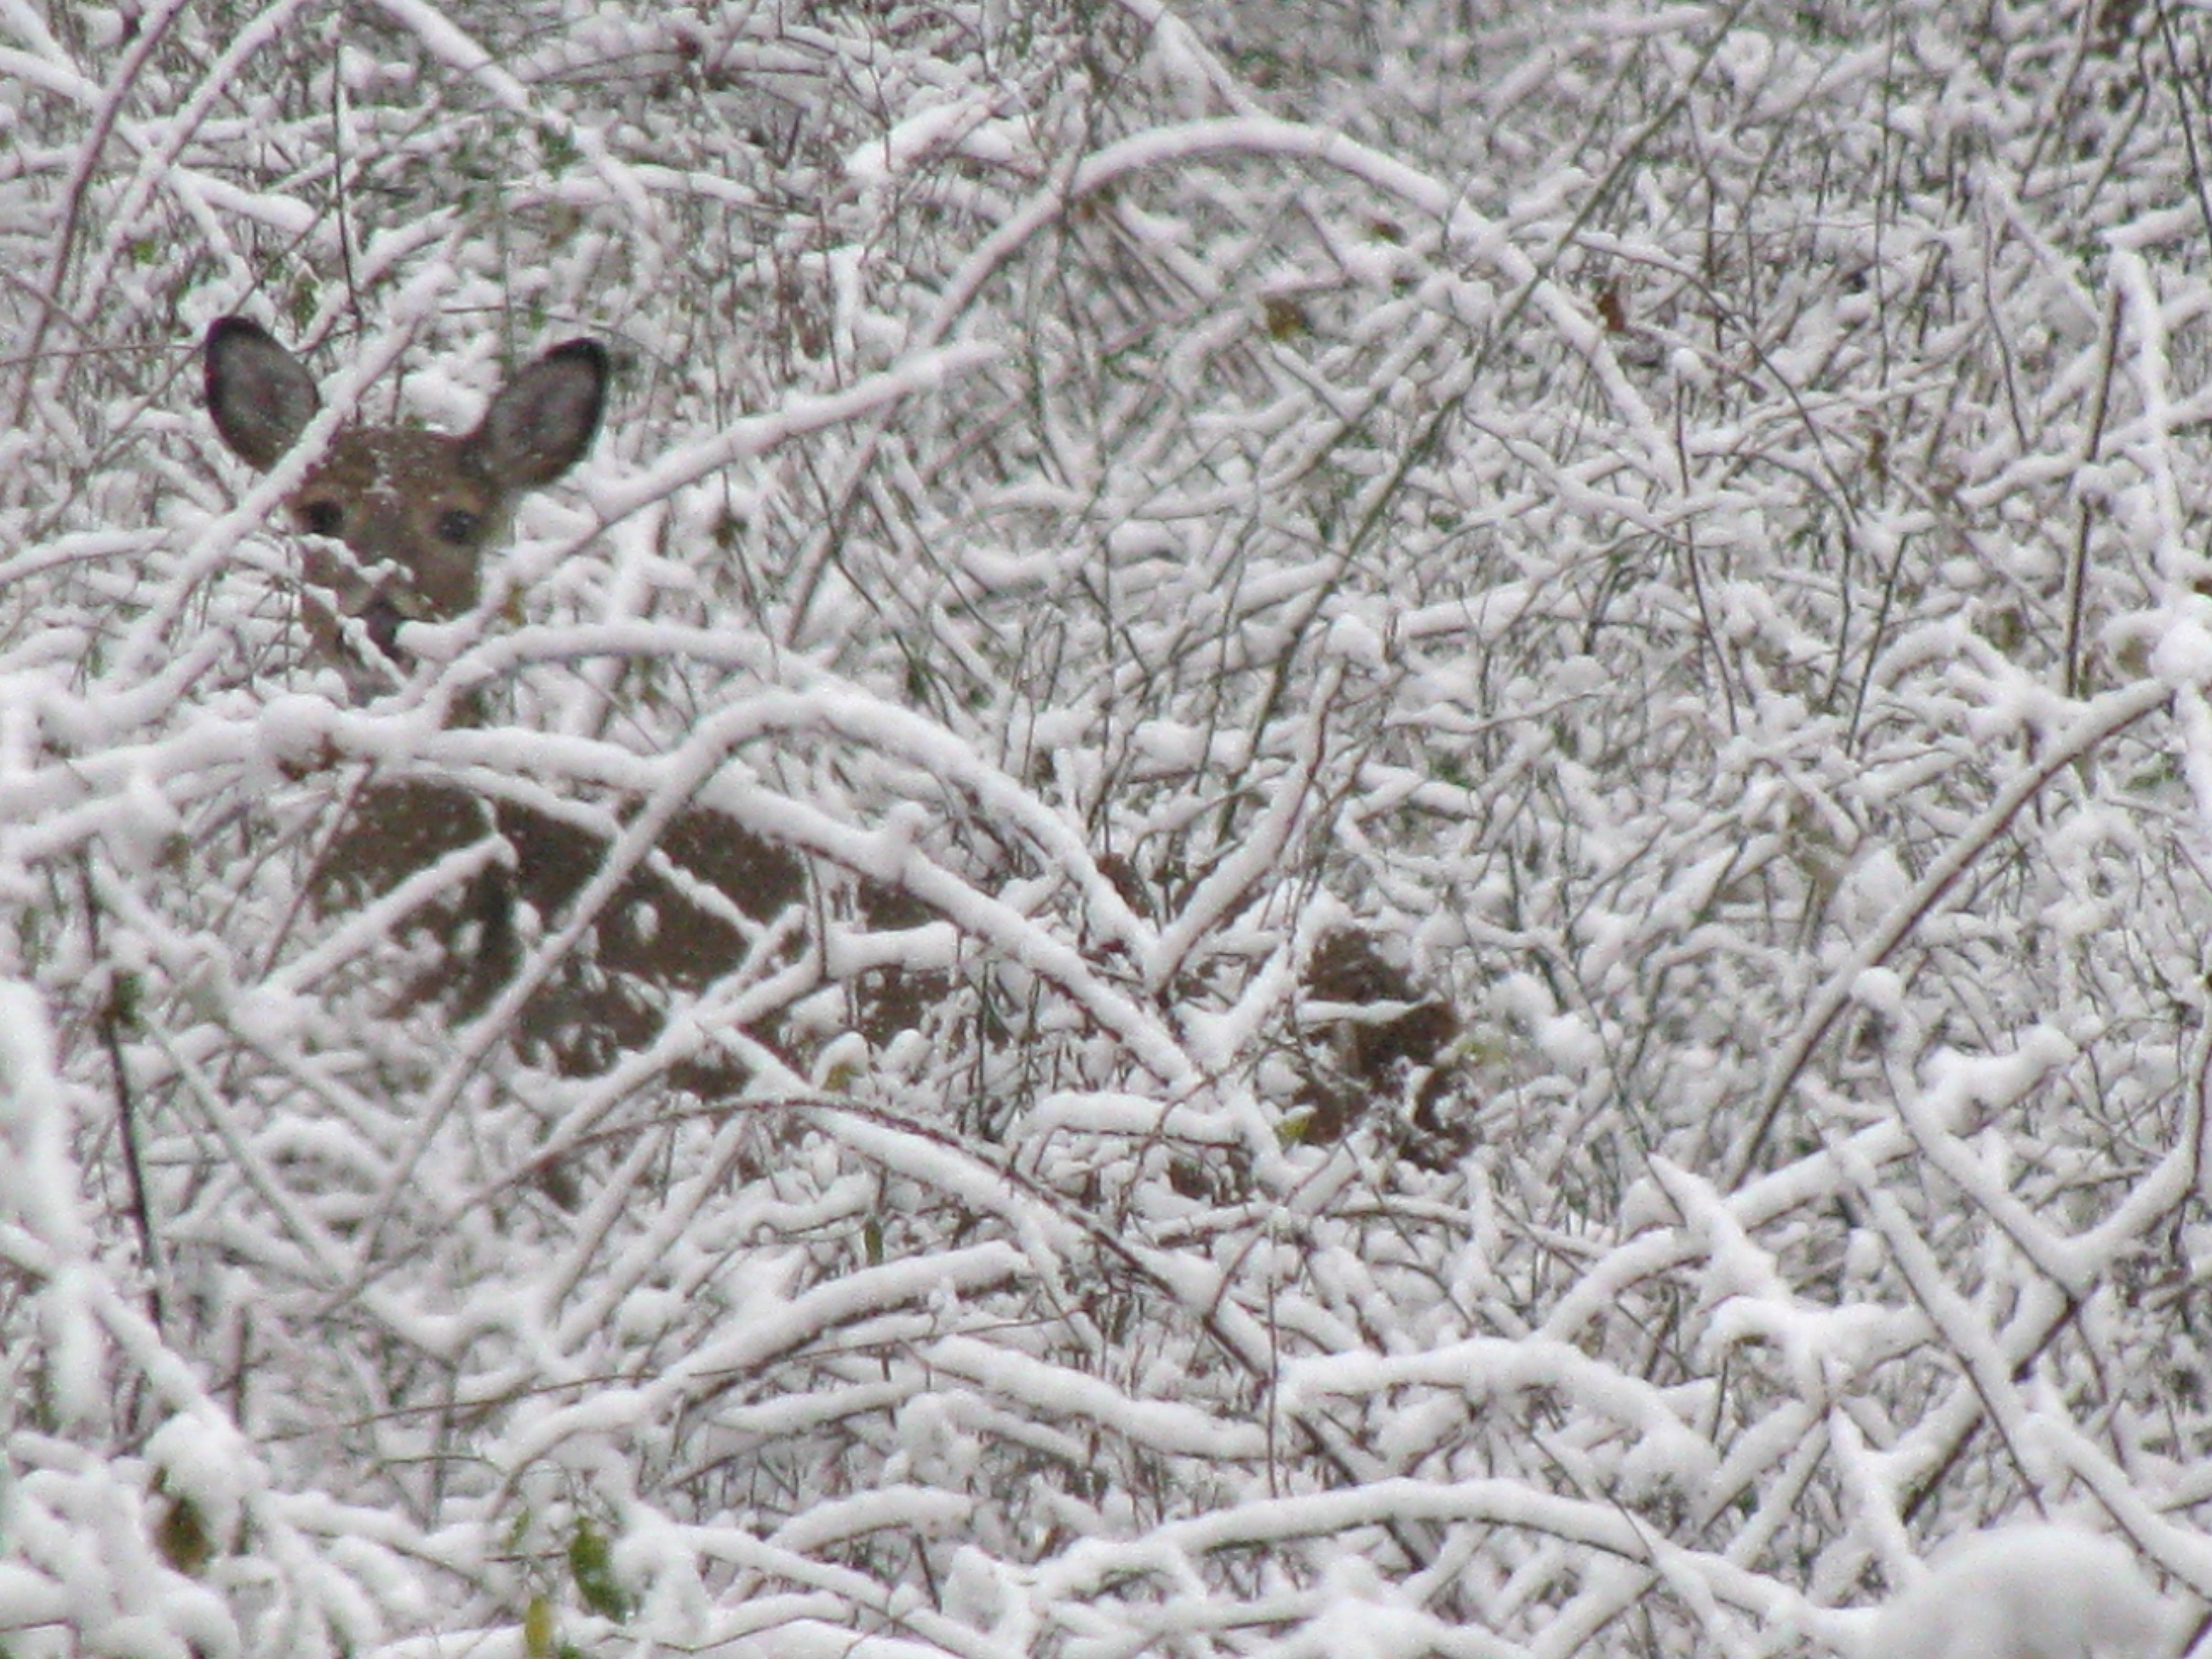 A White-tailed Deer peers through snow-laden brambles.